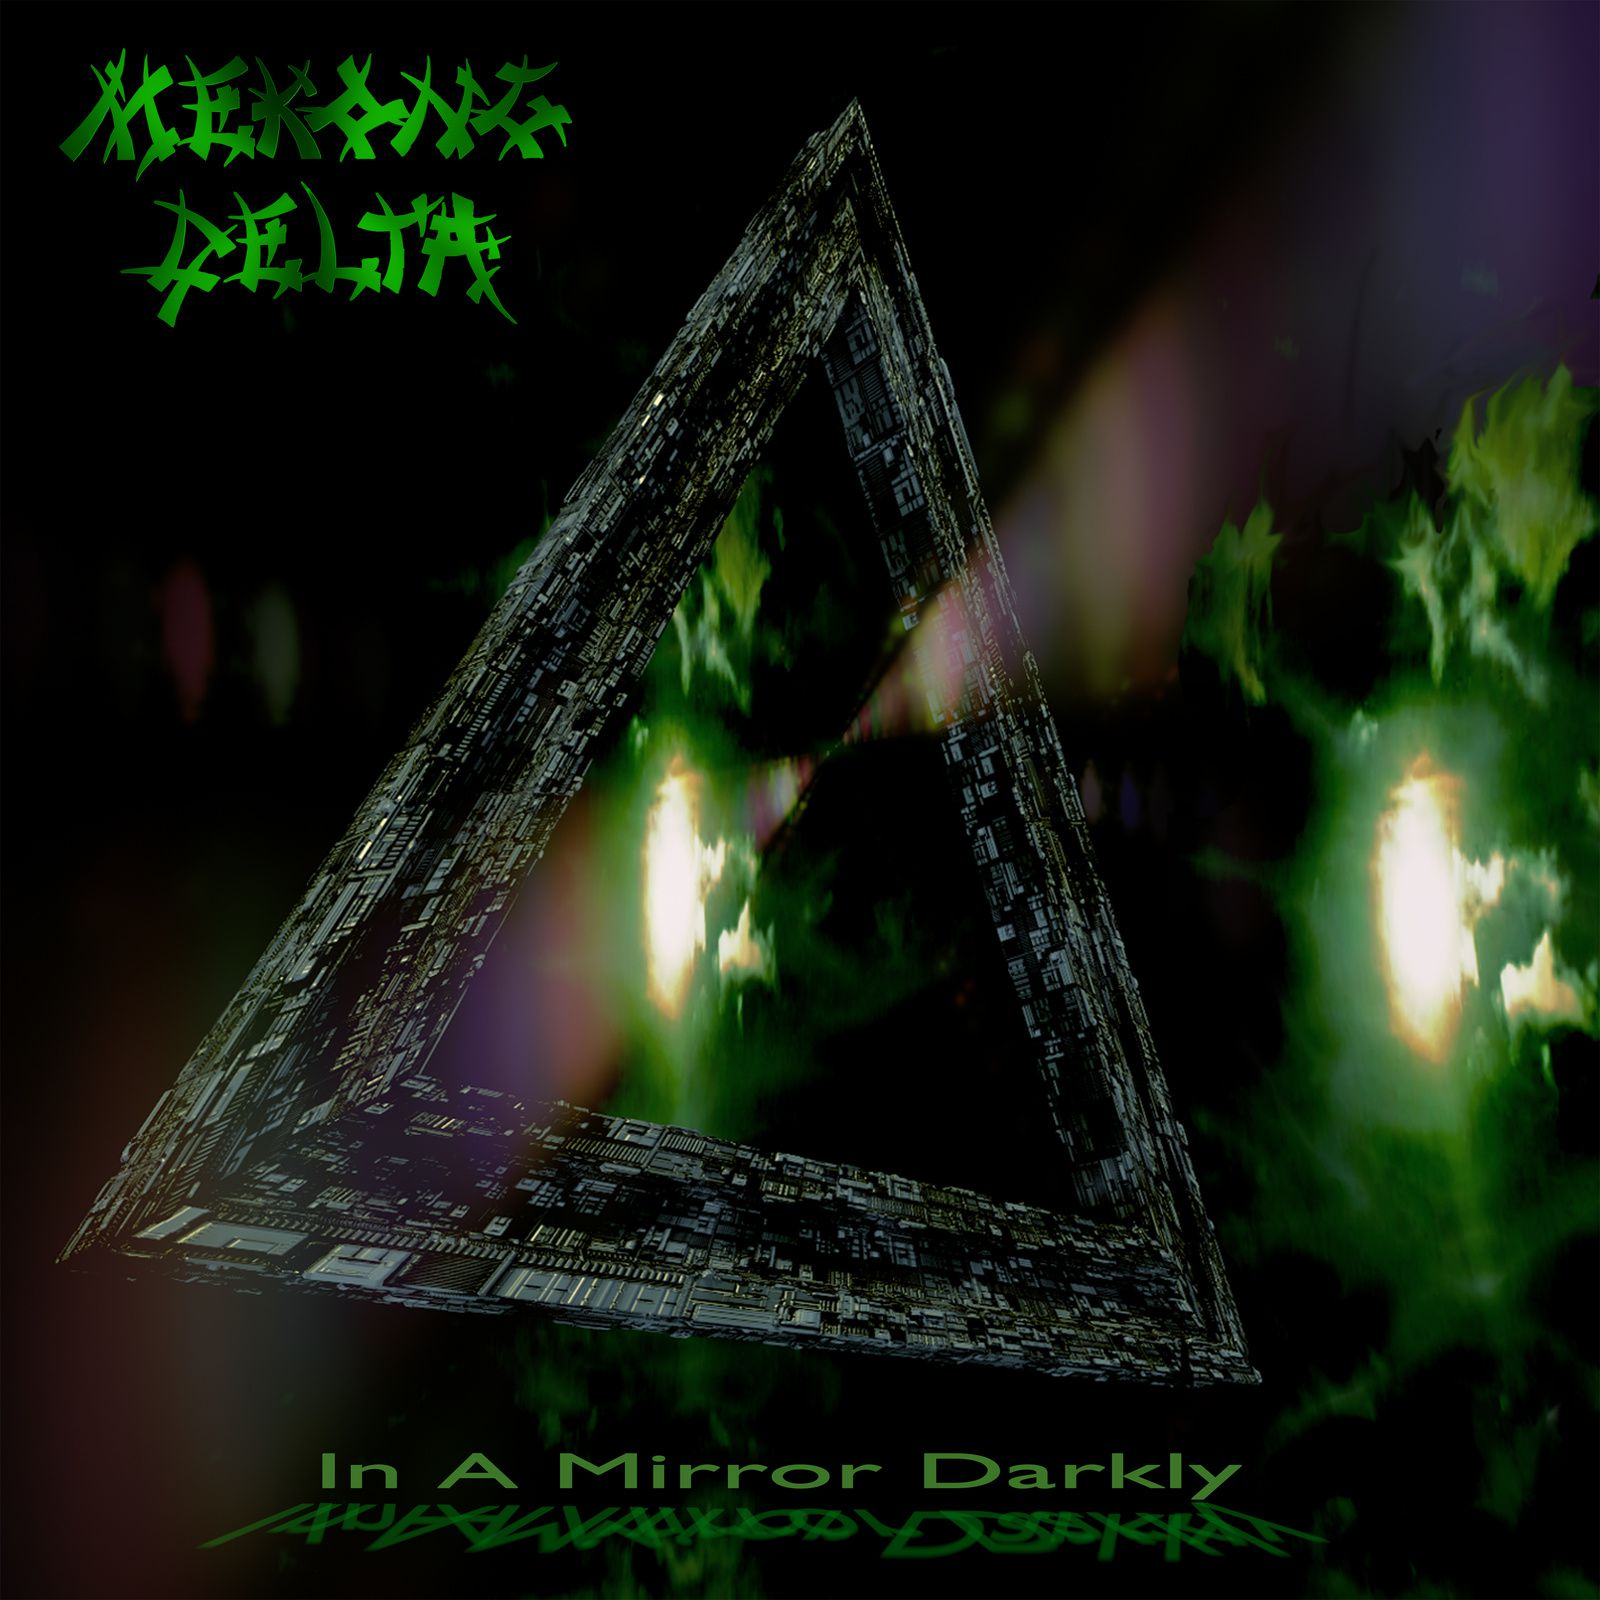 """CD review MEKONG DELTA """"In a mirror darkly"""""""